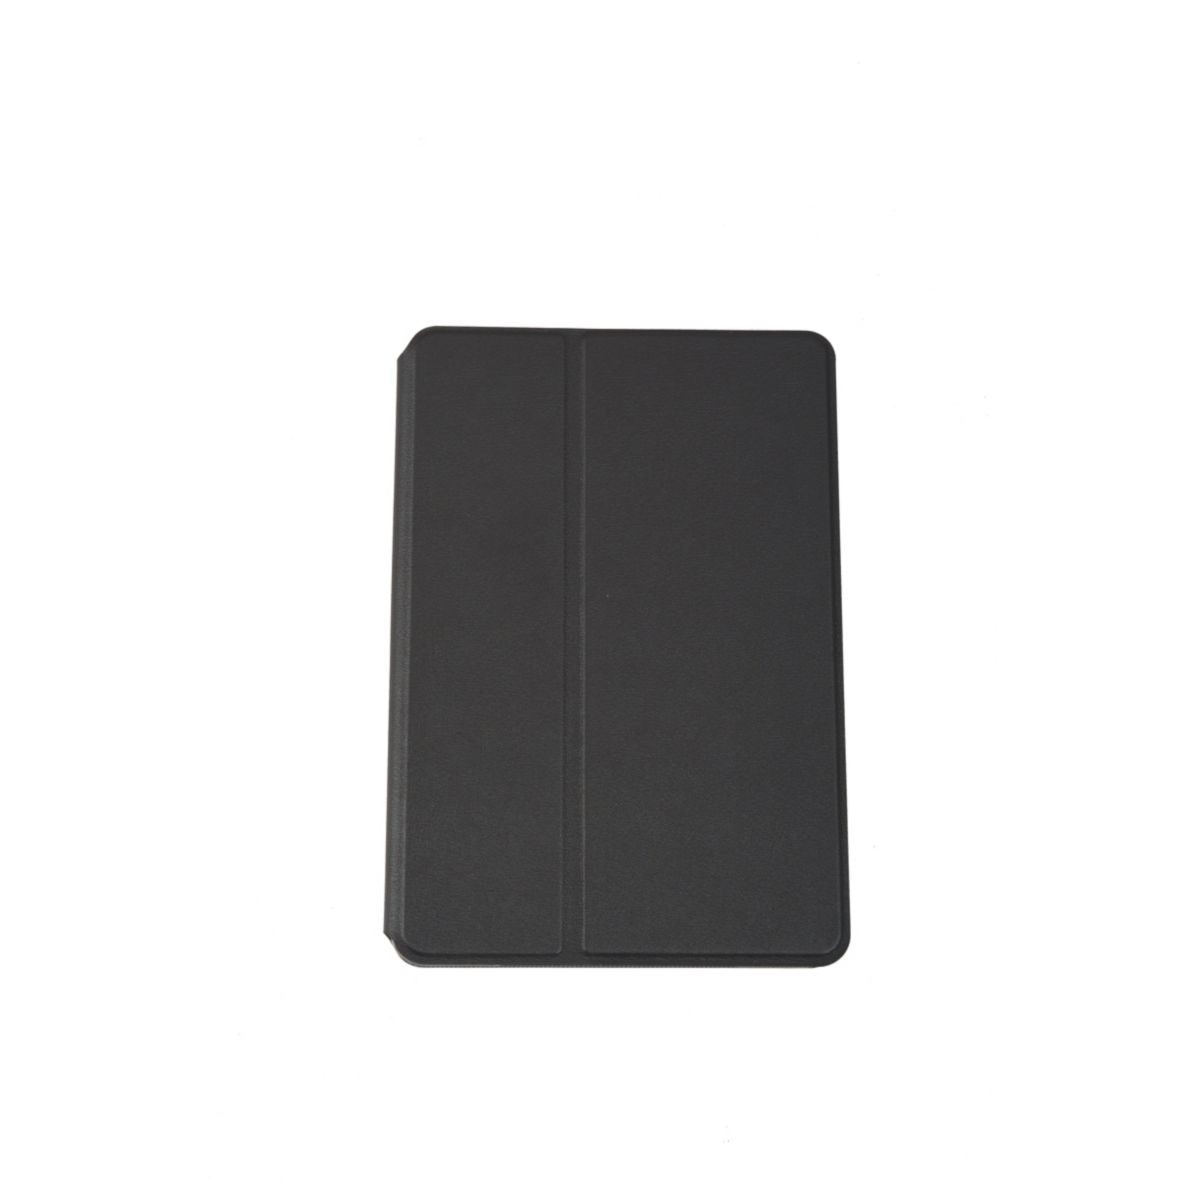 Etui ESSENTIELB iPad Mini 2/3 stand Noir (photo)